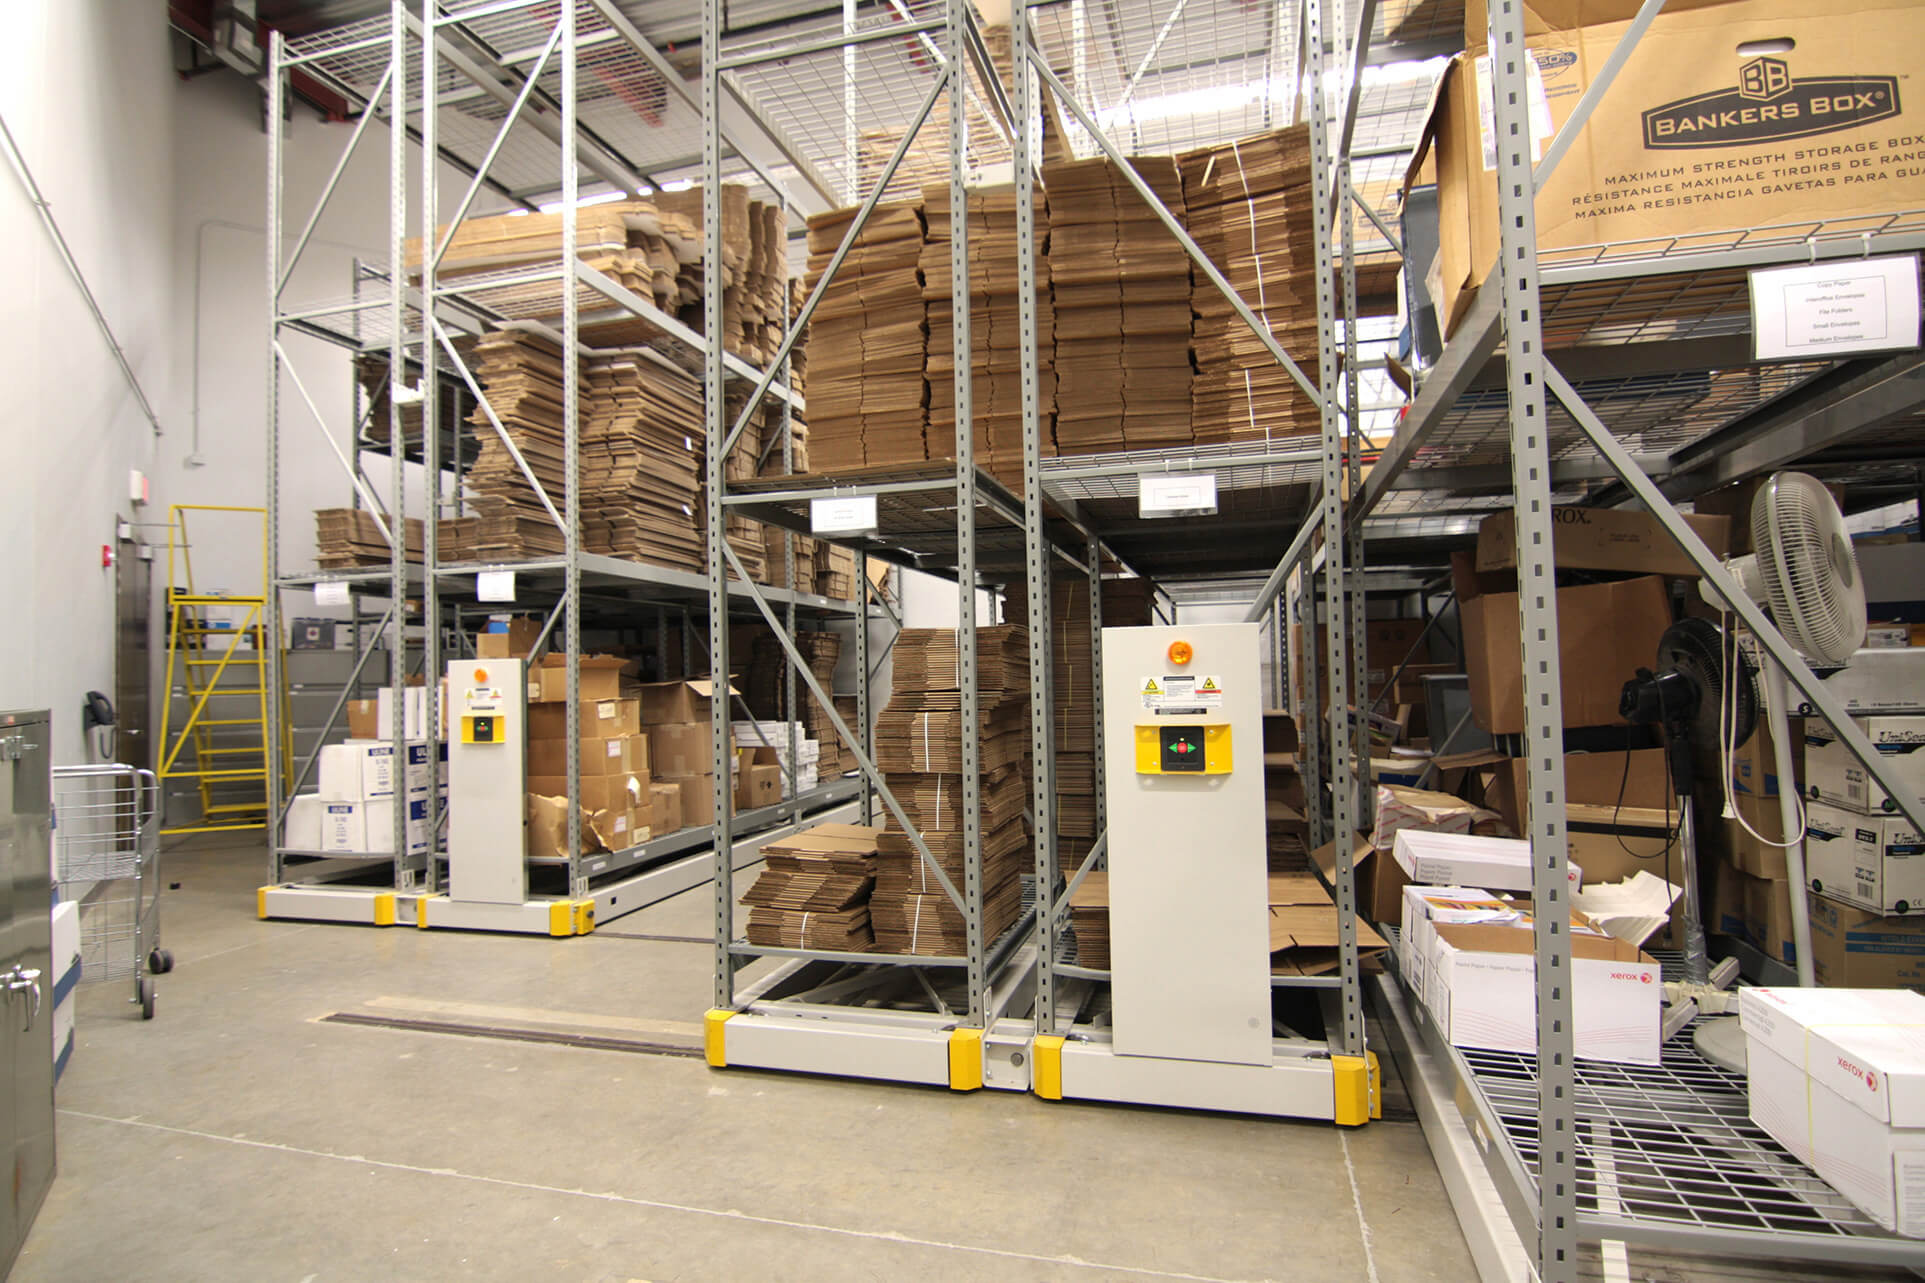 Wide span racking on compact mobile storage system in evidence room